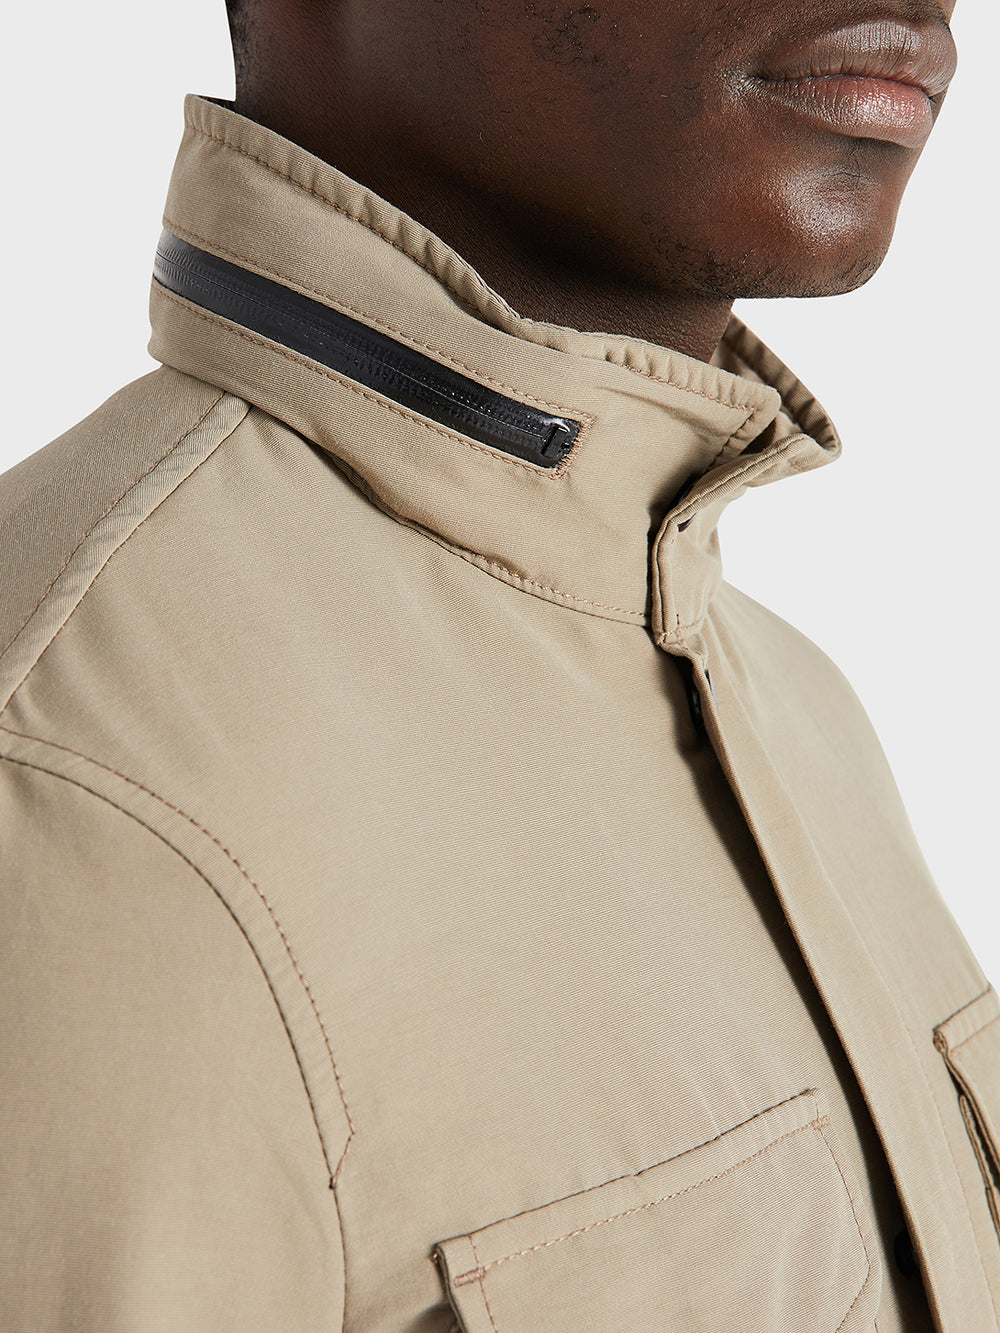 ONS Clothing Men's outerwear in KHAKI